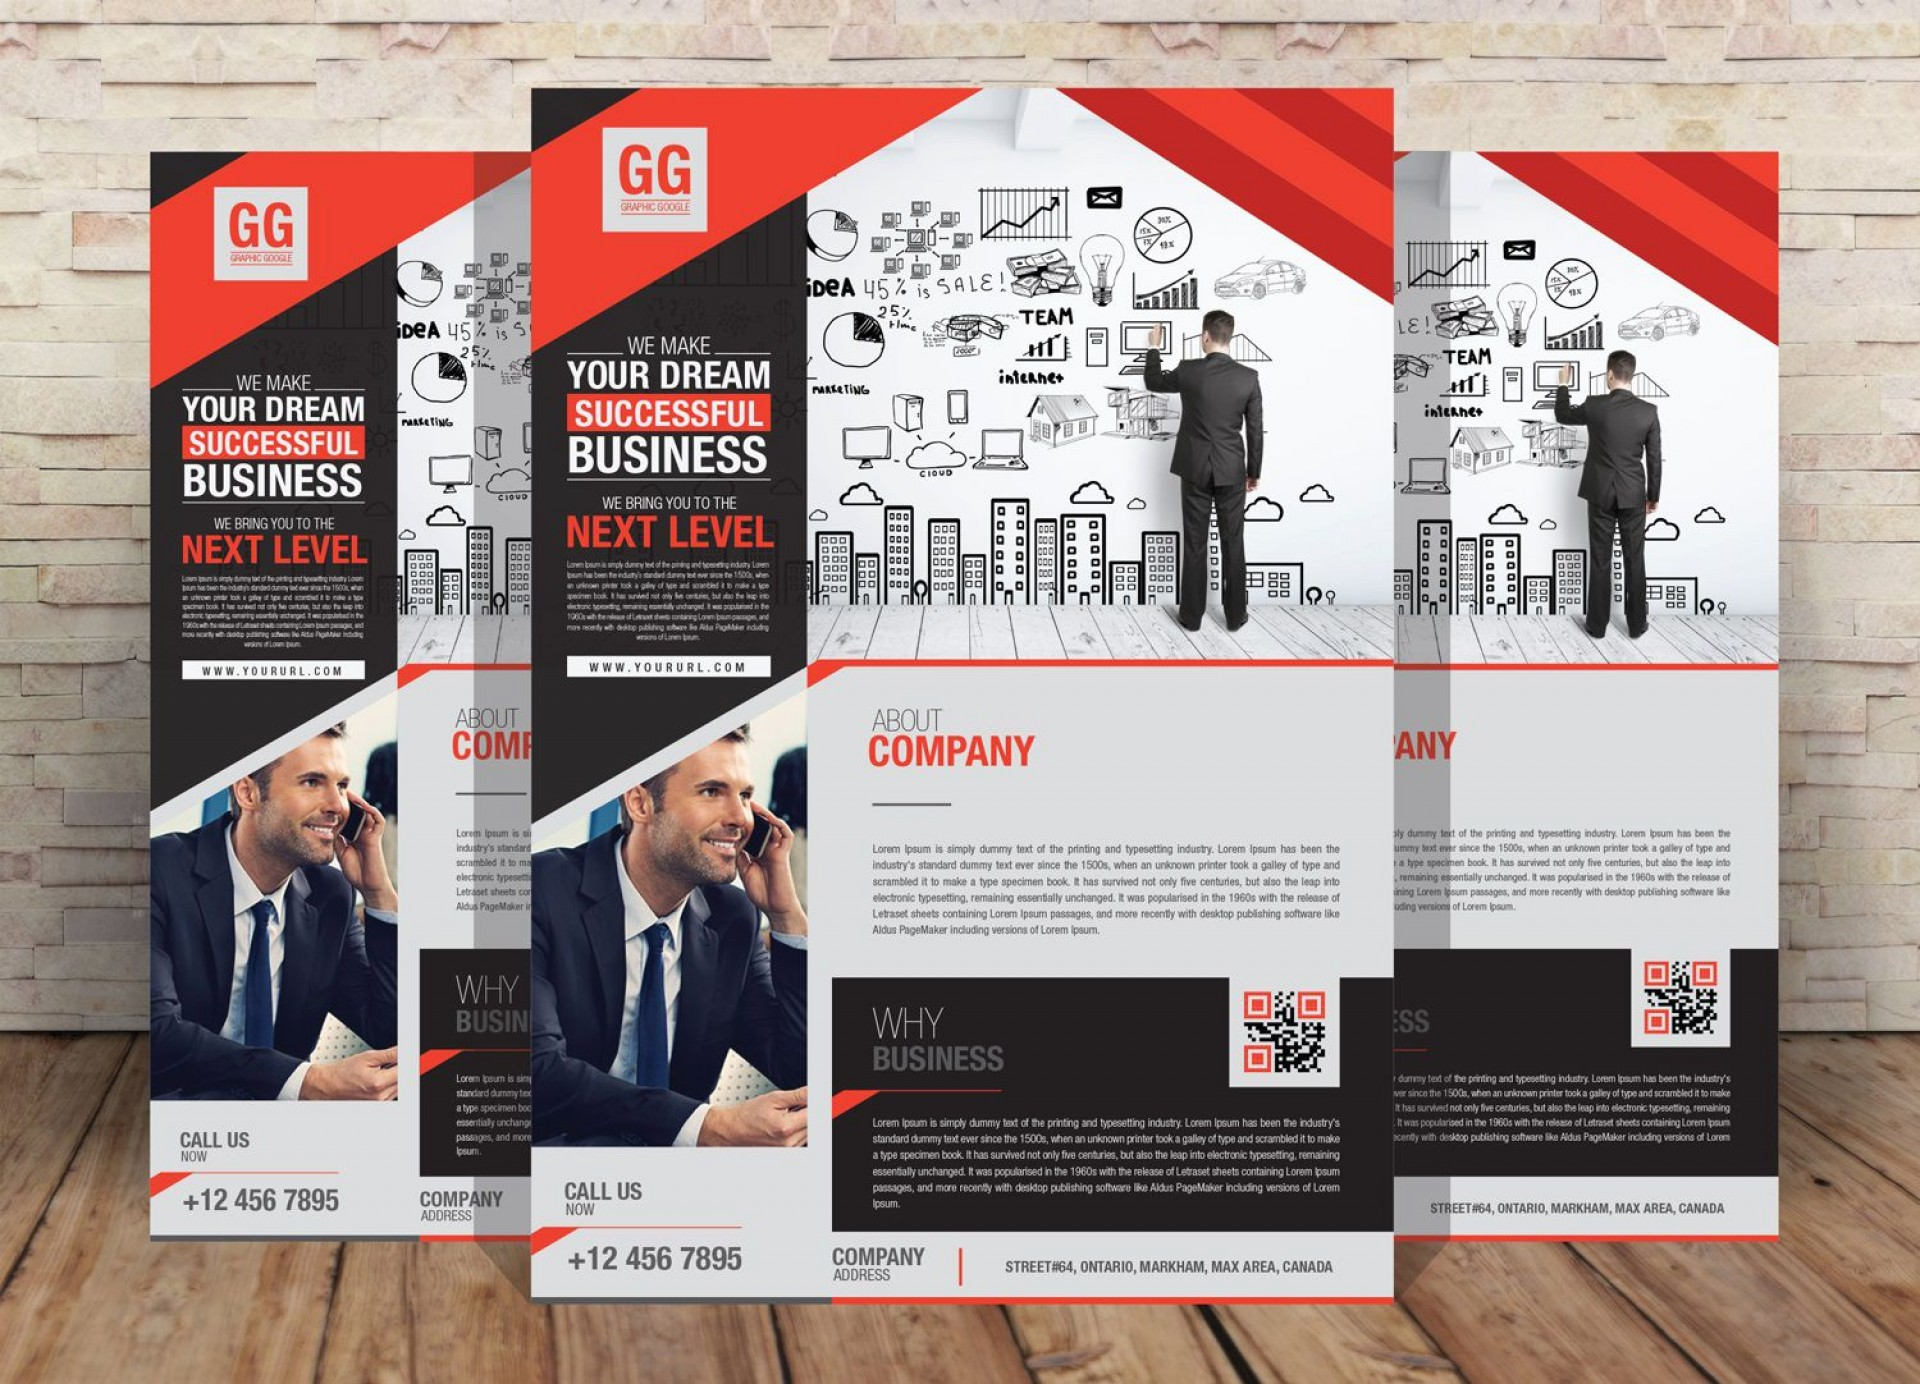 007 Beautiful Free Flyer Design Template Highest Quality  Indesign For Word Microsoft1920